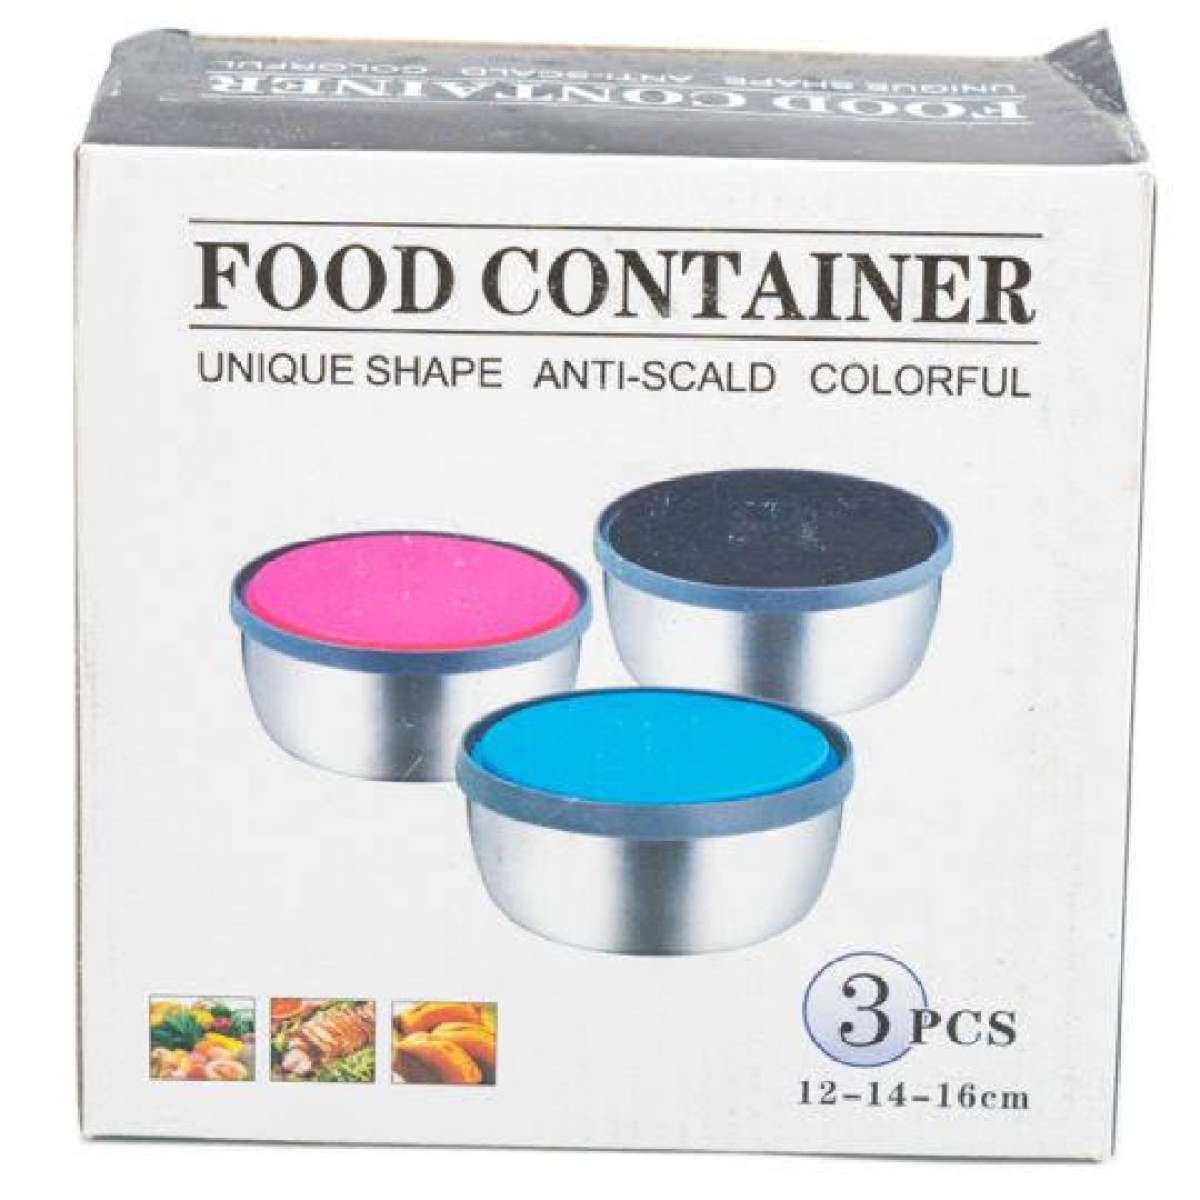 3 Pcs Stainless Steel Food Cantainer Colorful Fresh Keeping Box Gallery Image 1